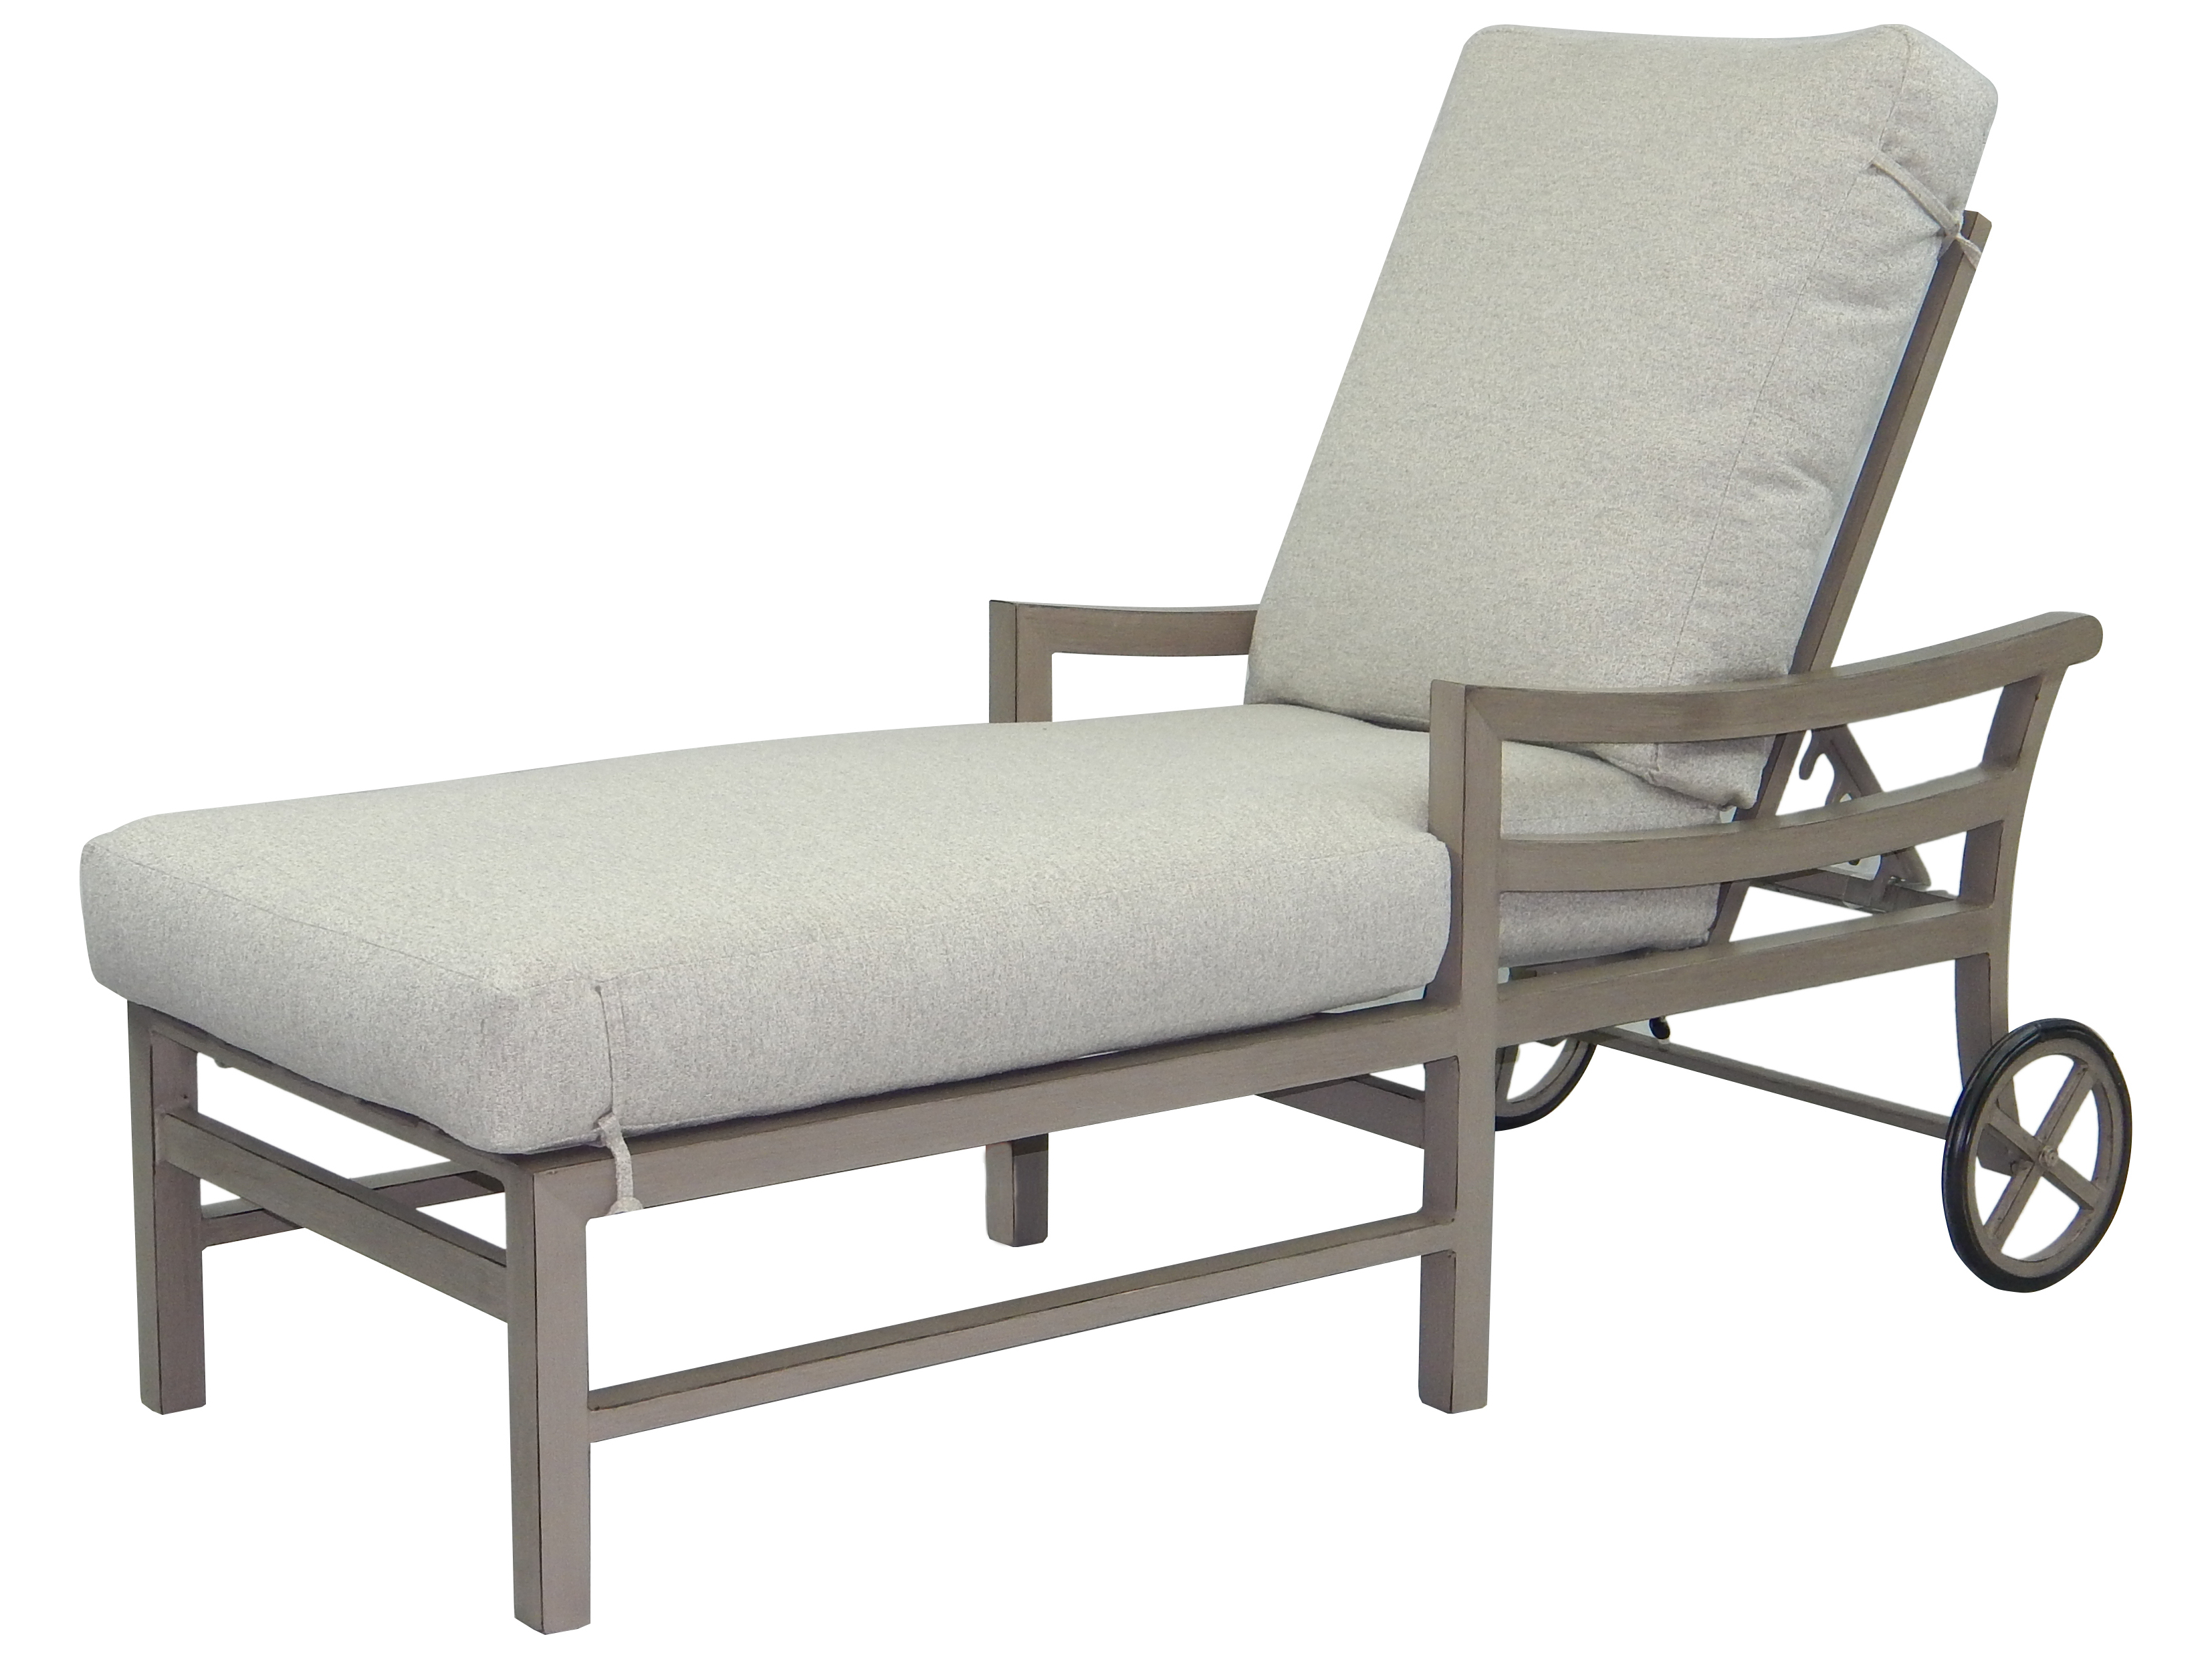 Current Outdoor Aluminum Adjustable Chaise Lounges With Castelle Roma Cushion Aluminum Adjustable Chaise Lounge With Wheels (View 25 of 25)